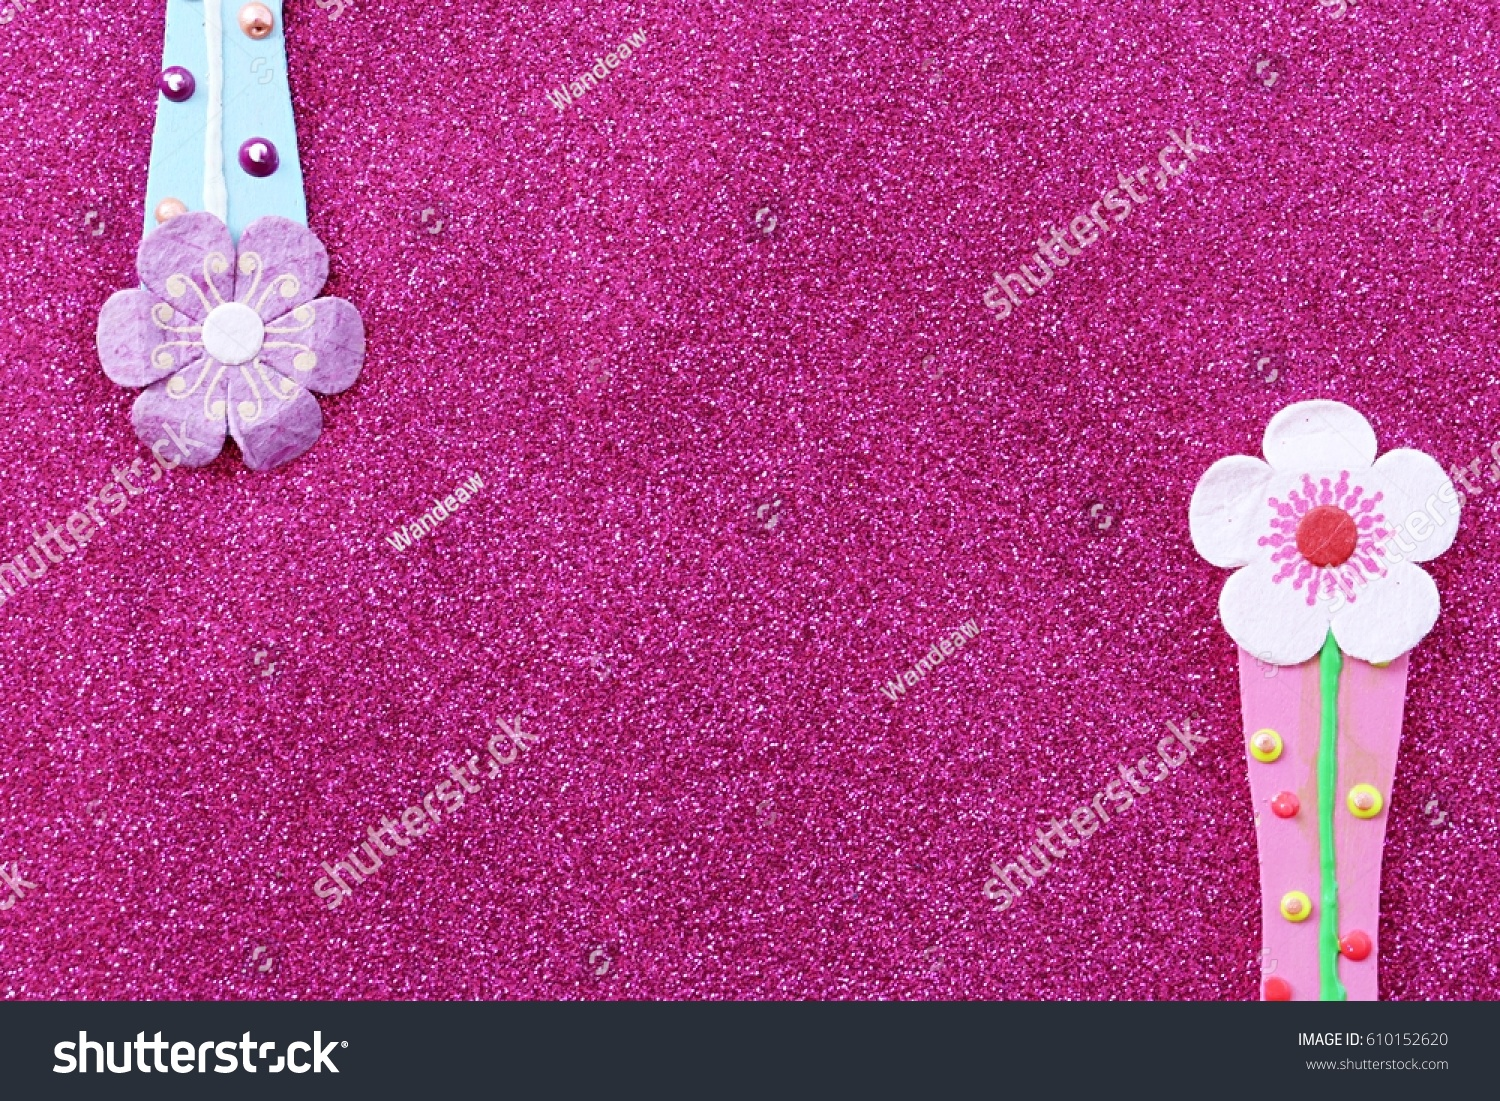 Pink Glitter Flowers Decoration Abstract Background Stock Photo